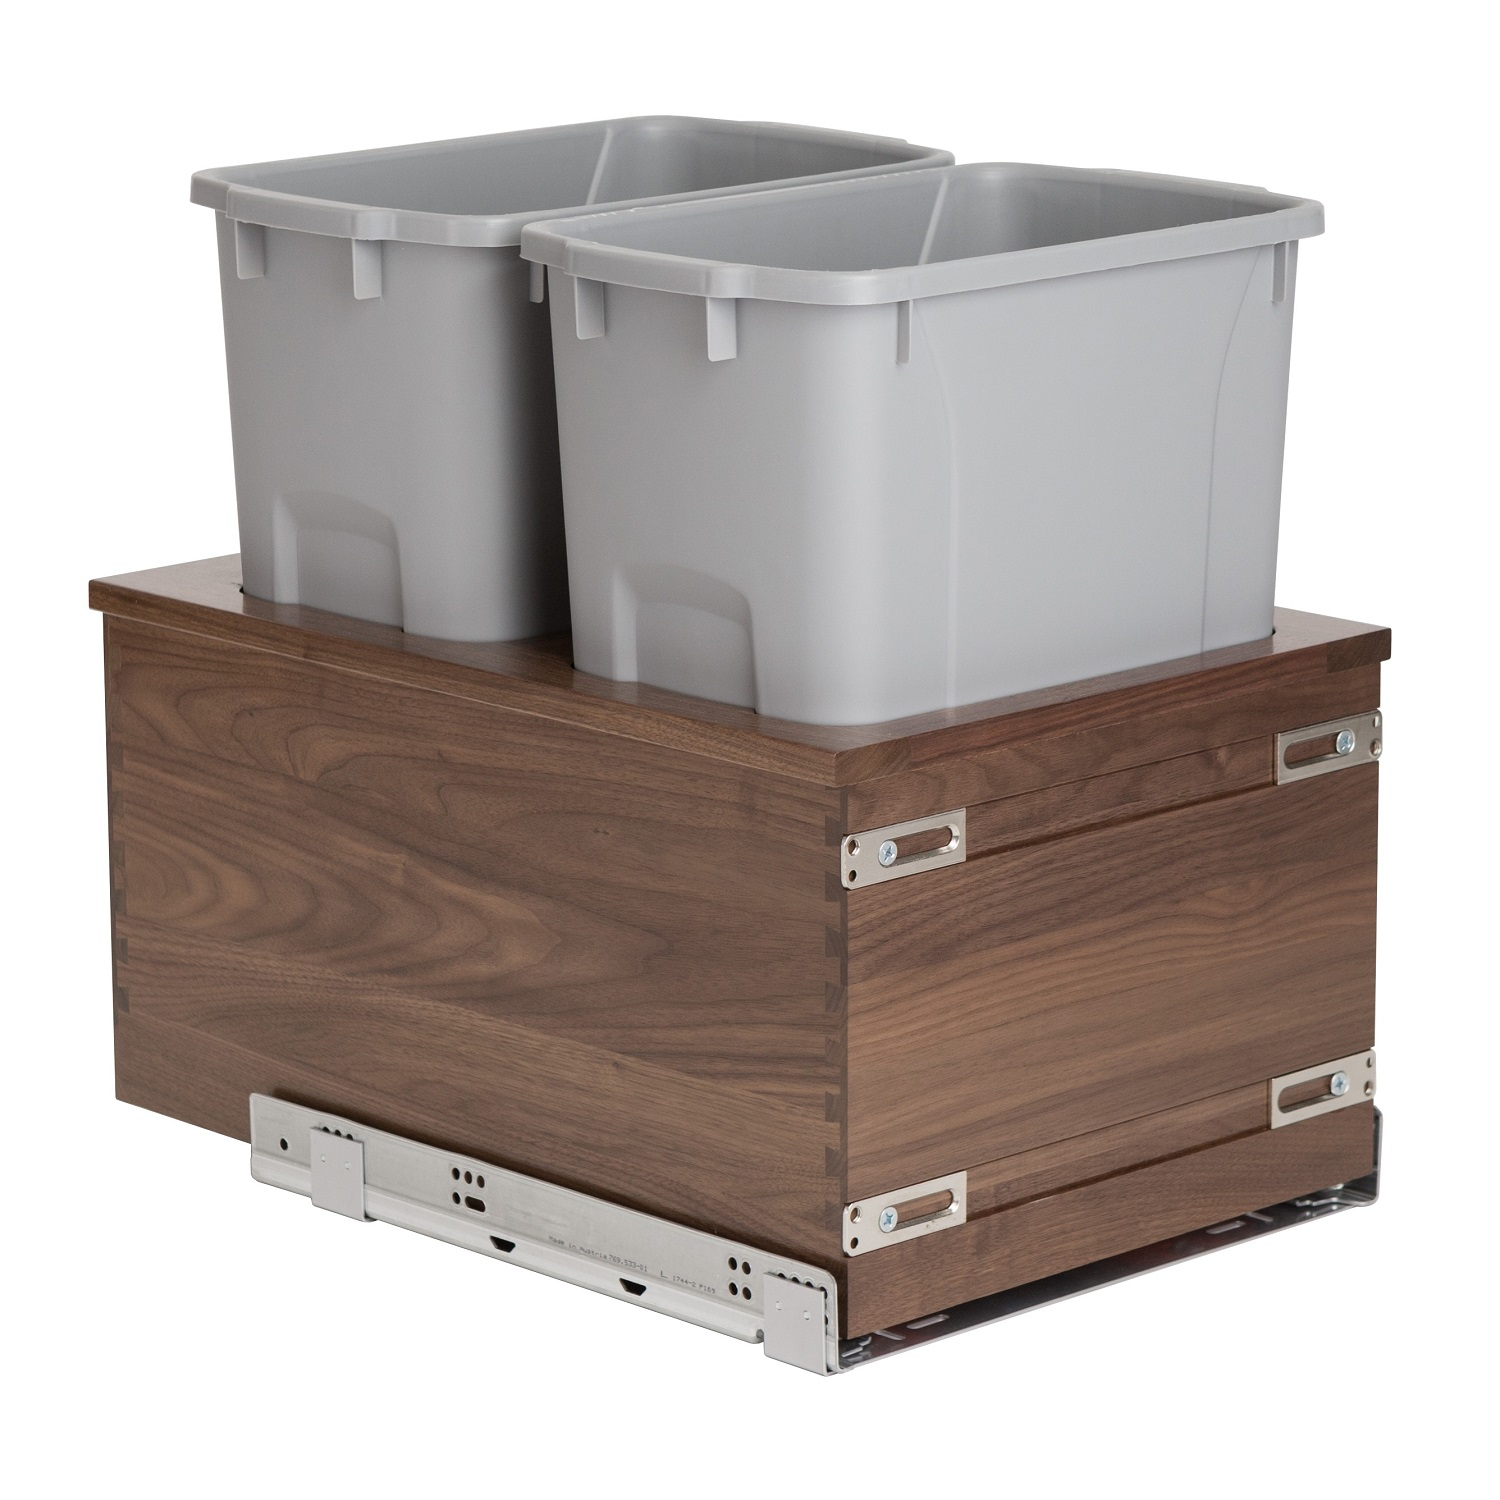 Century Components Riviera Collection RIVBM17PF Walnut Kitchen Pull Out Waste Bin Container - 34 Qt Gray Double - Soft-Close 170 lb. MOVENTO 769 Slides, 17-7/8""